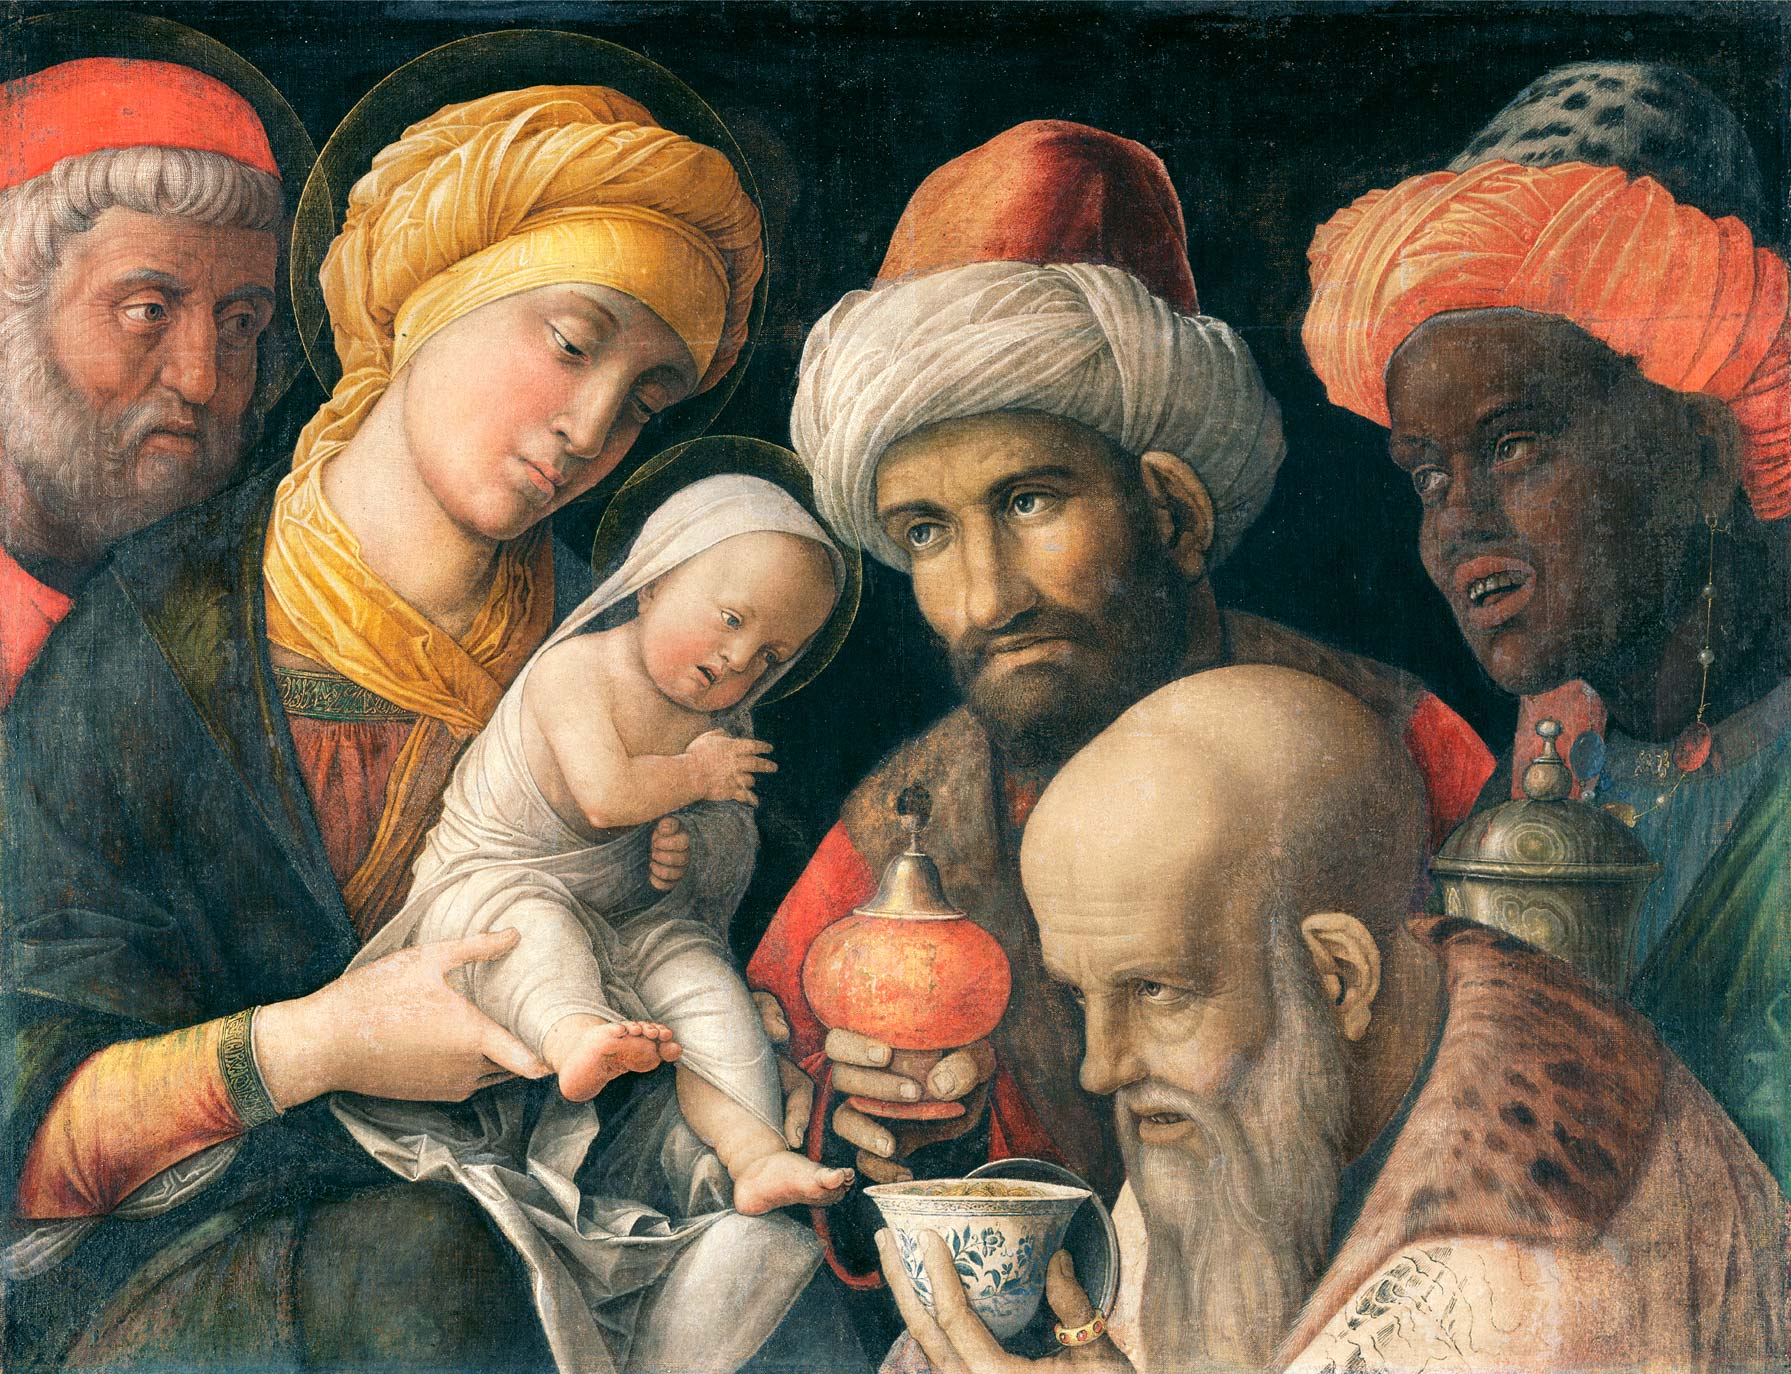 Sacred space102fm january 2015 st matthew tells us 21 12 that wise men came from out of the east seeking the new born child as the messiah of the whole world not just for the people of malvernweather Gallery